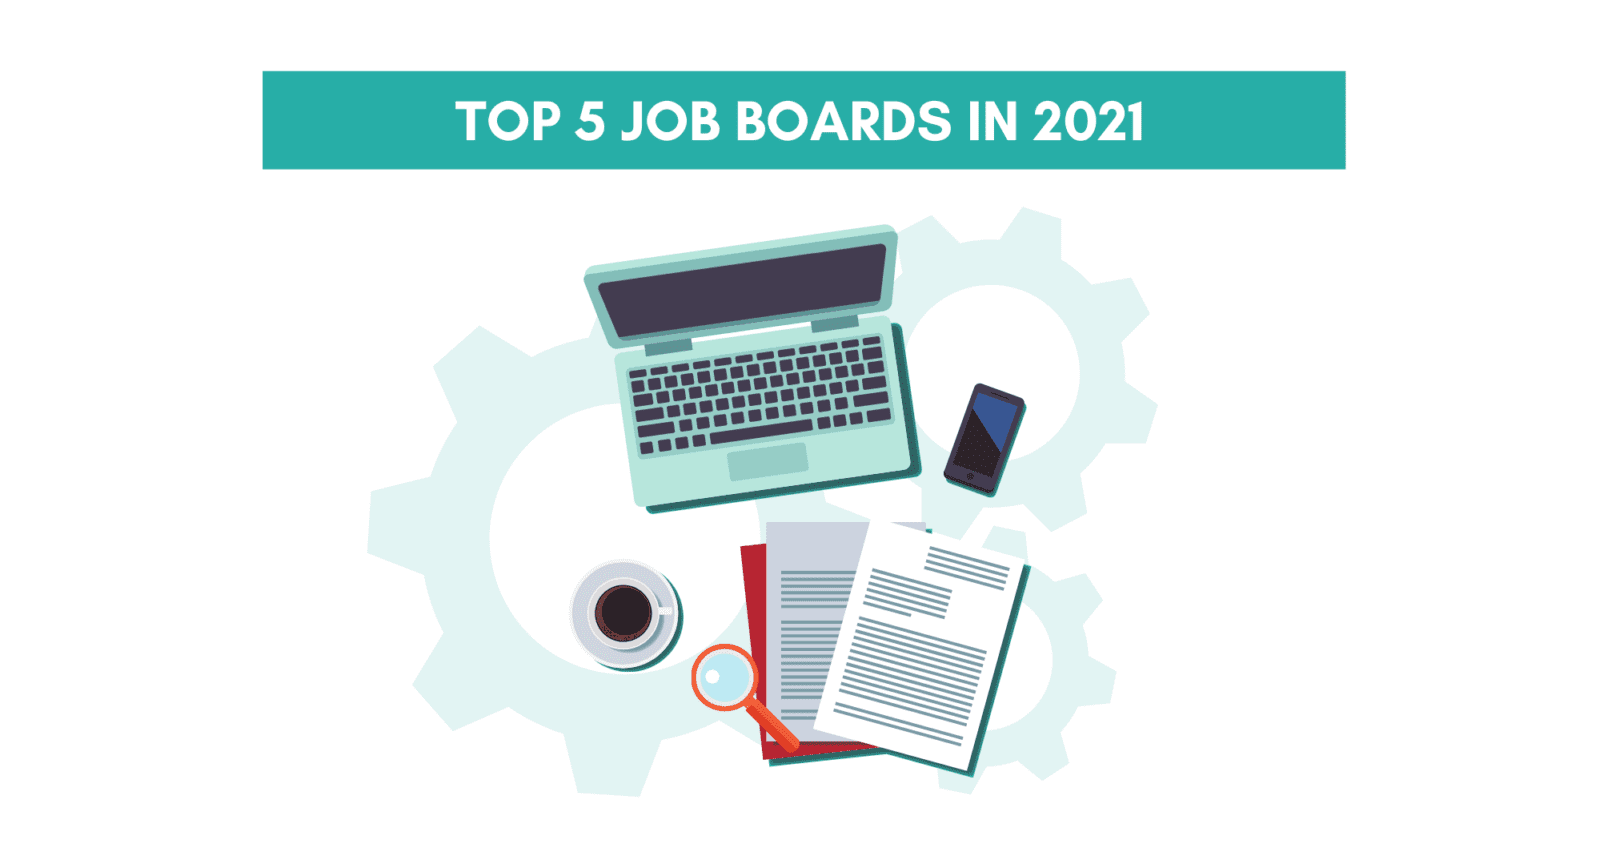 Top 5 job boards in 2021. Best job boards in 2021. What are the best job boards in 2021.